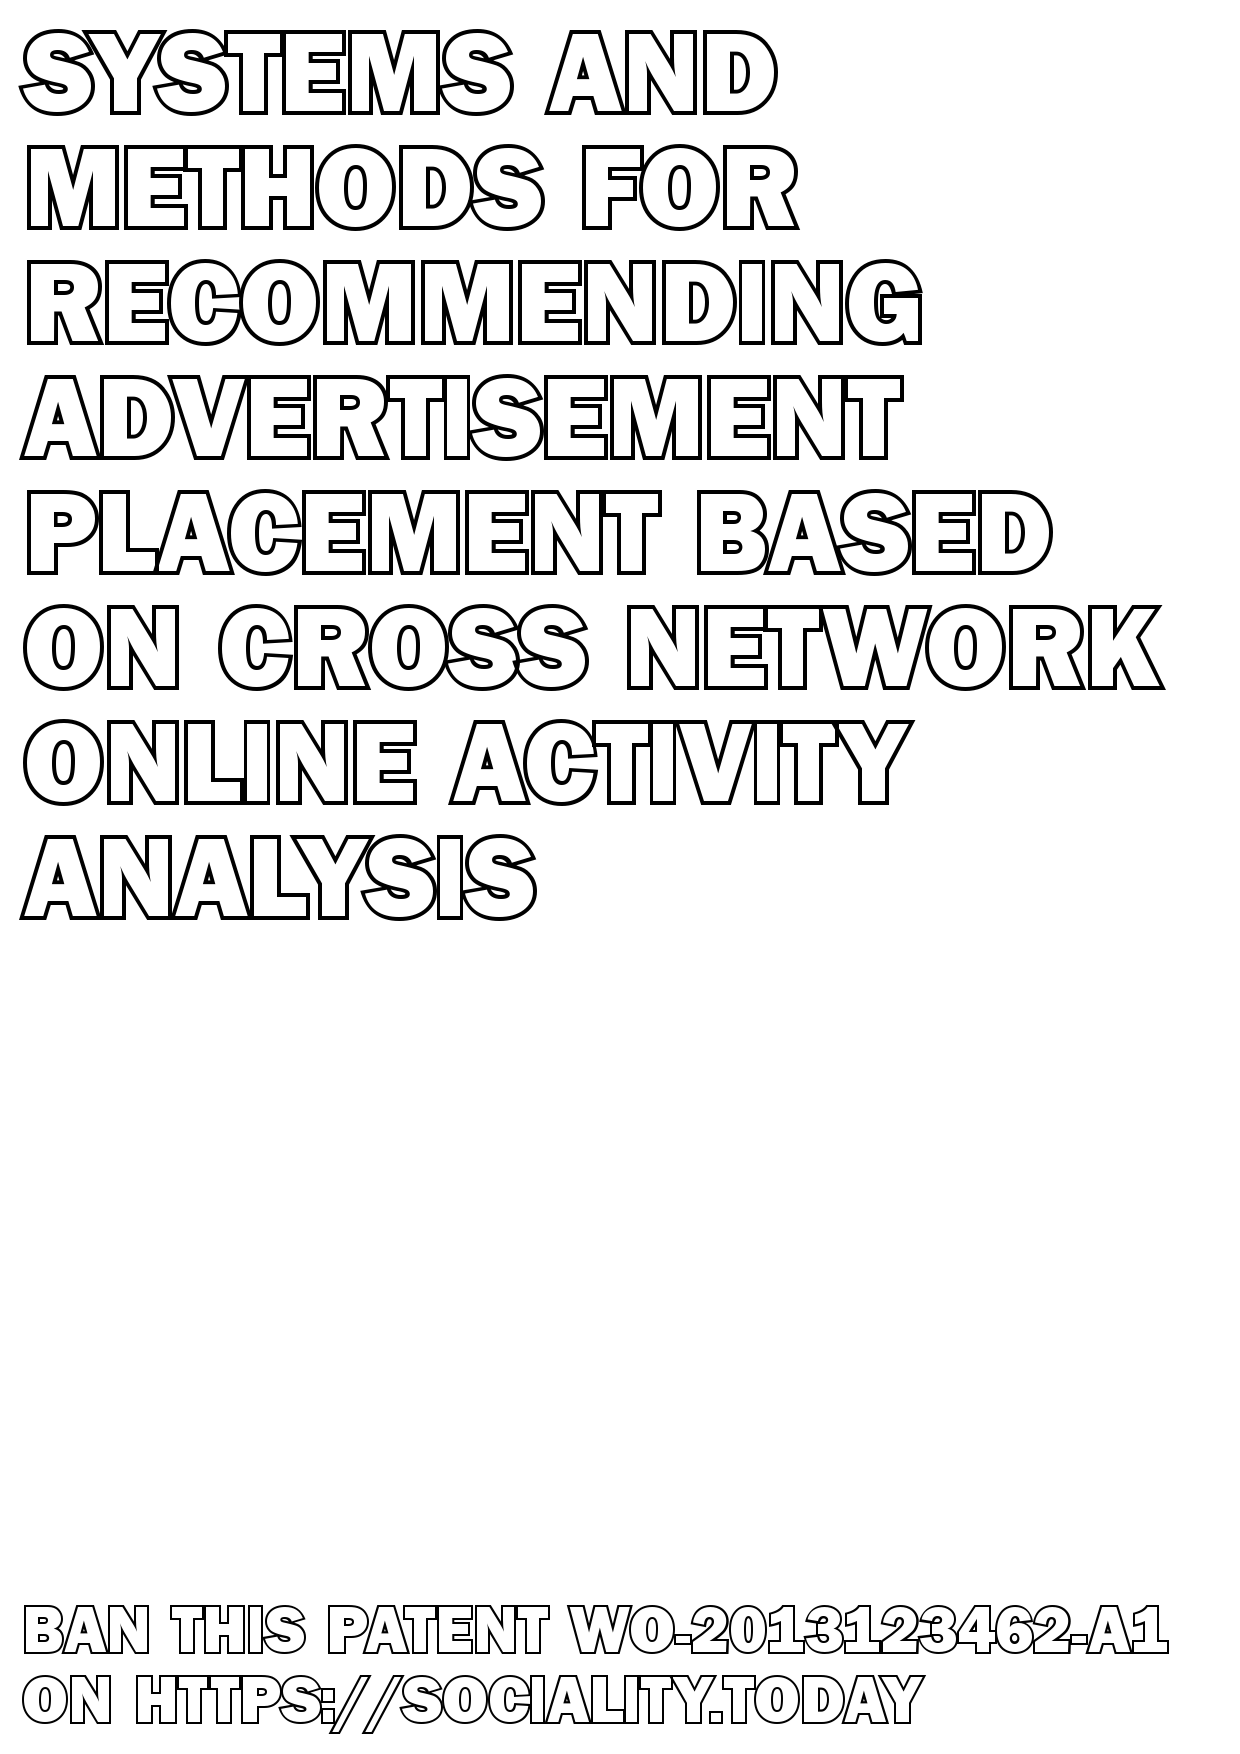 Systems and methods for recommending advertisement placement based on cross network online activity analysis  - WO-2013123462-A1